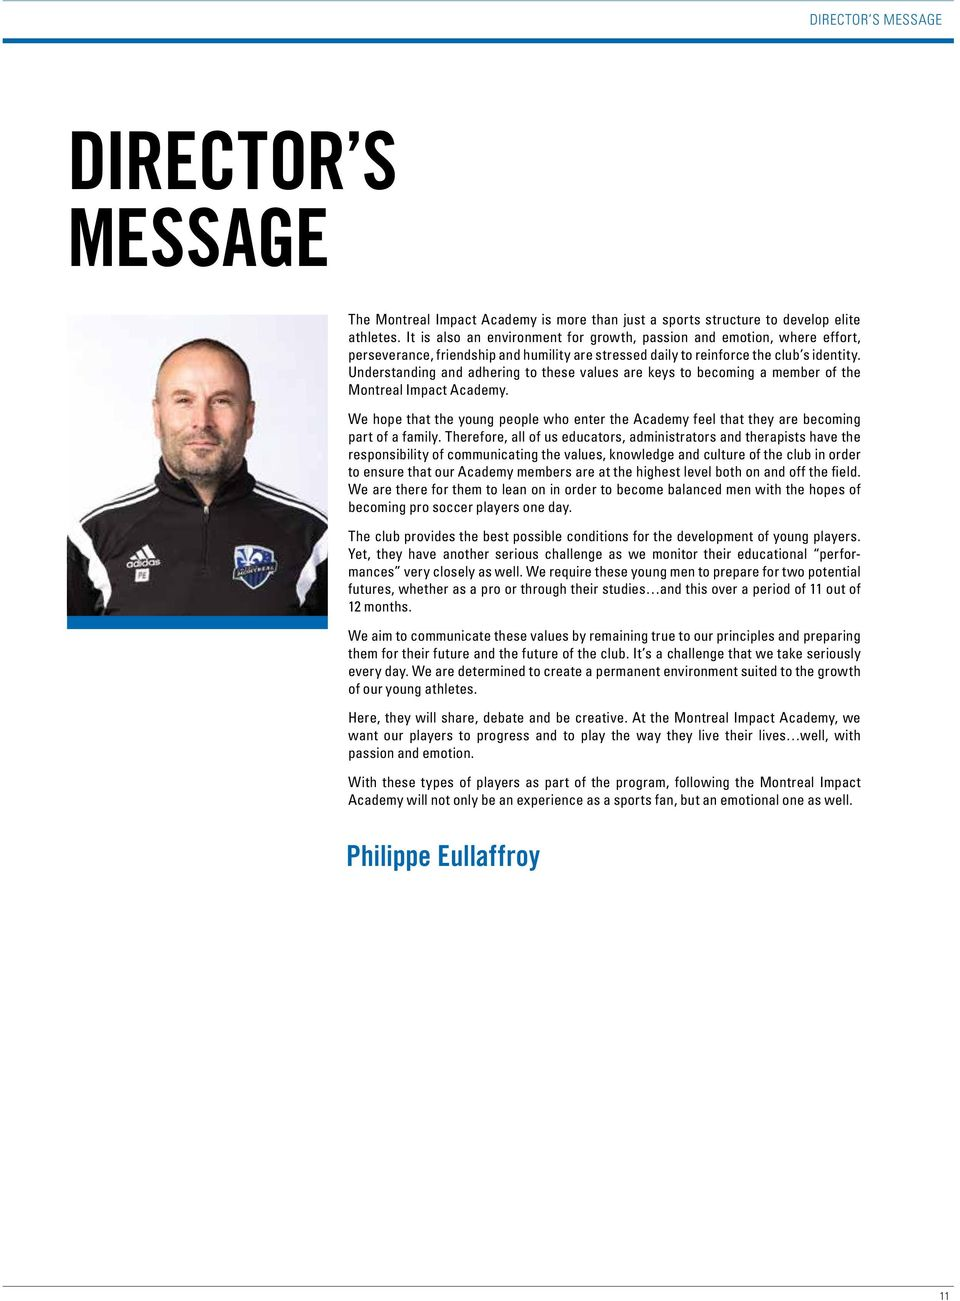 Understanding and adhering to these values are keys to becoming a member of the Montreal Impact Academy.